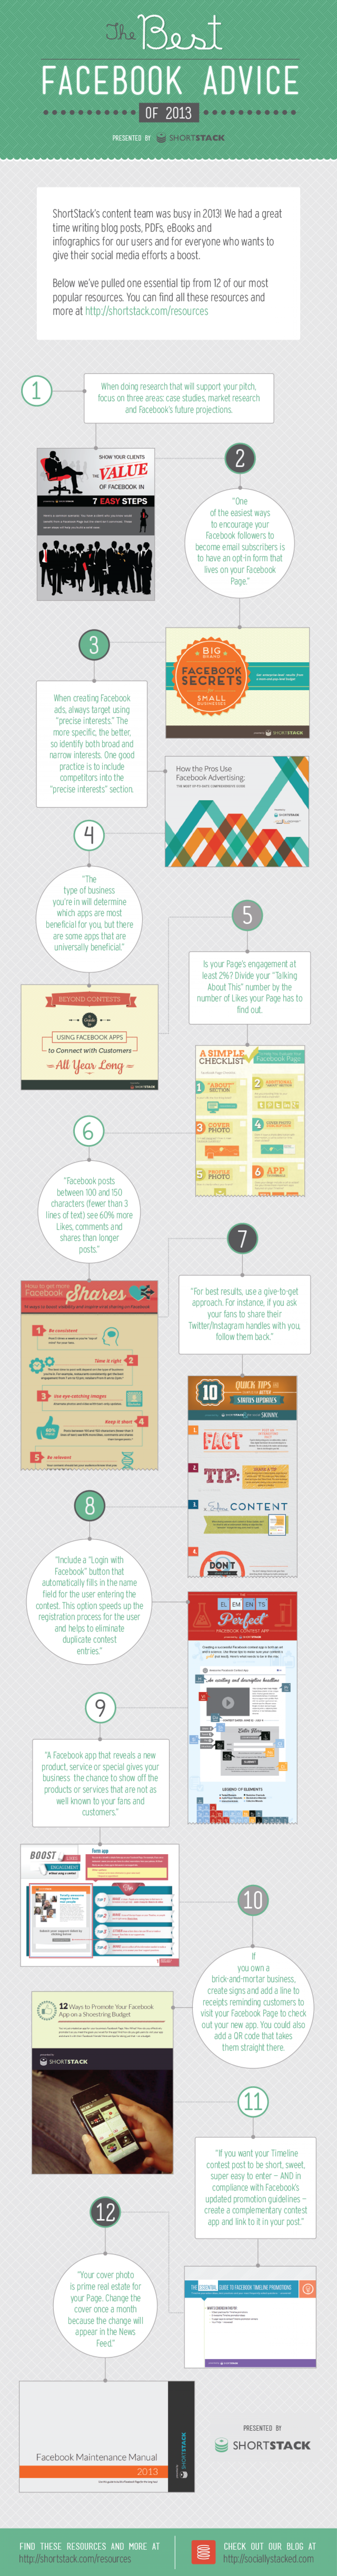 The Best Facebook Advice of 2013 Infographic